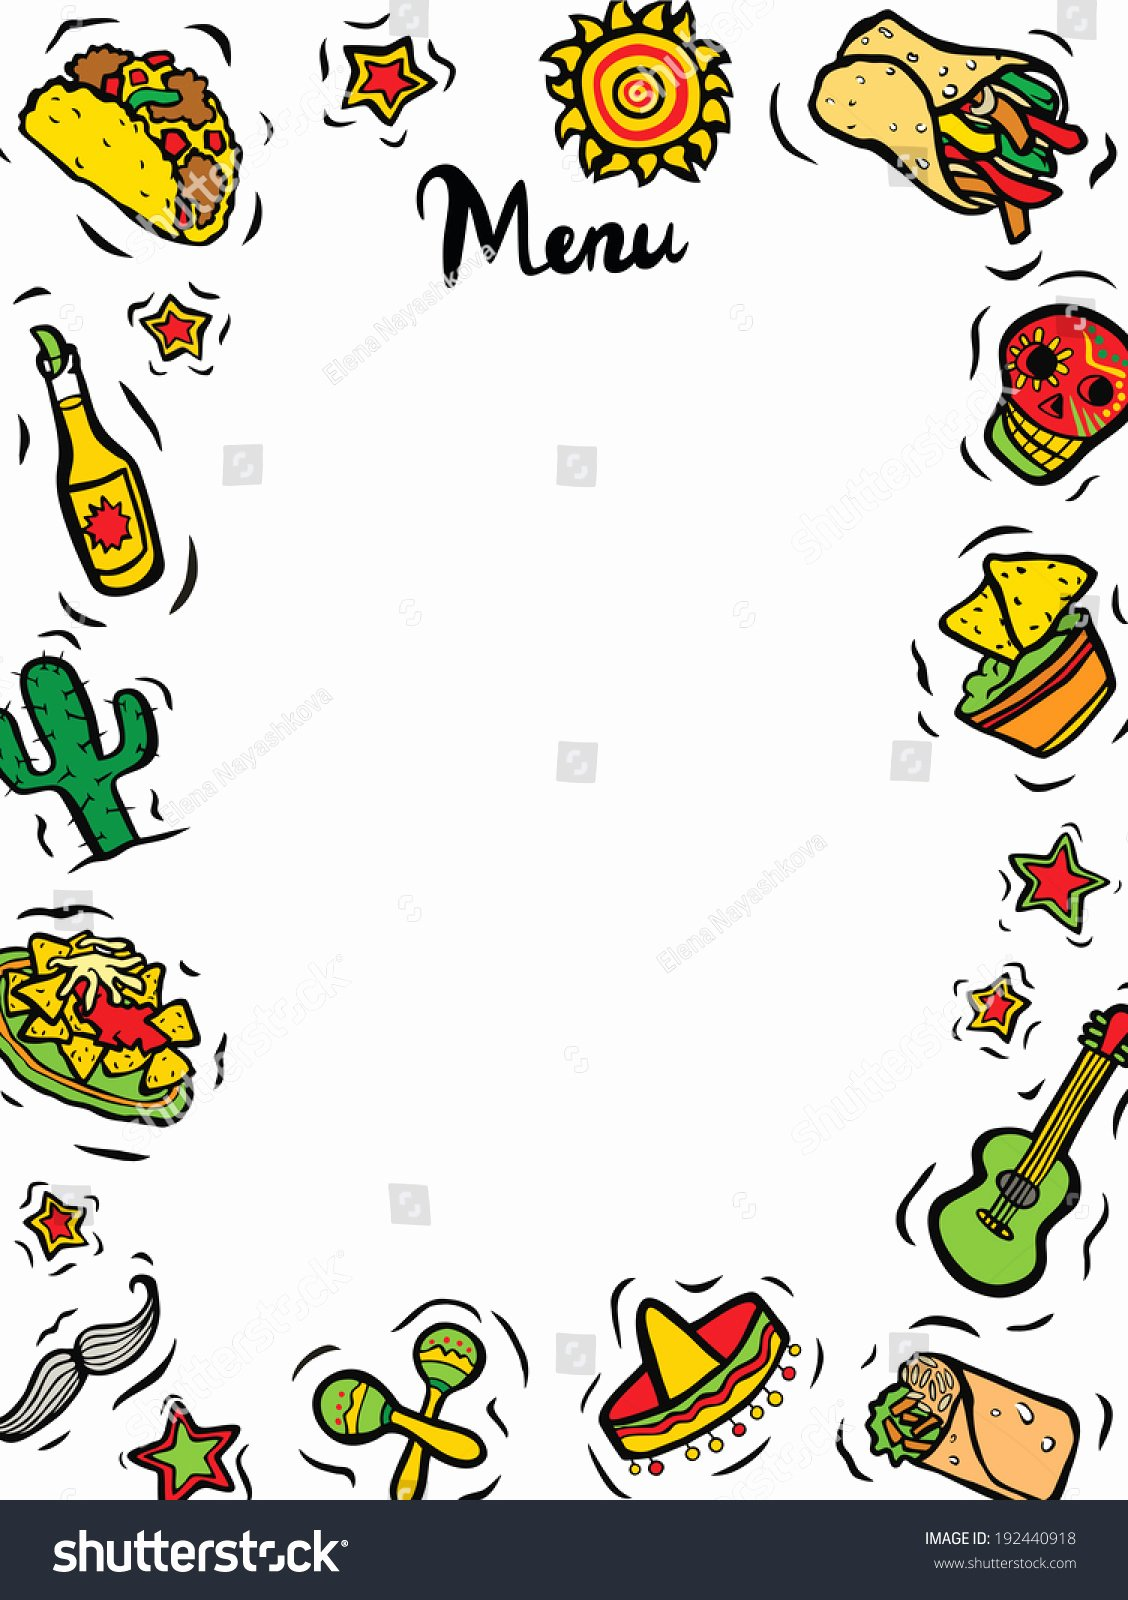 Mexican Restaurant Menu Template Unique Mexican Restaurant Ingre Nts Menu Template Stock